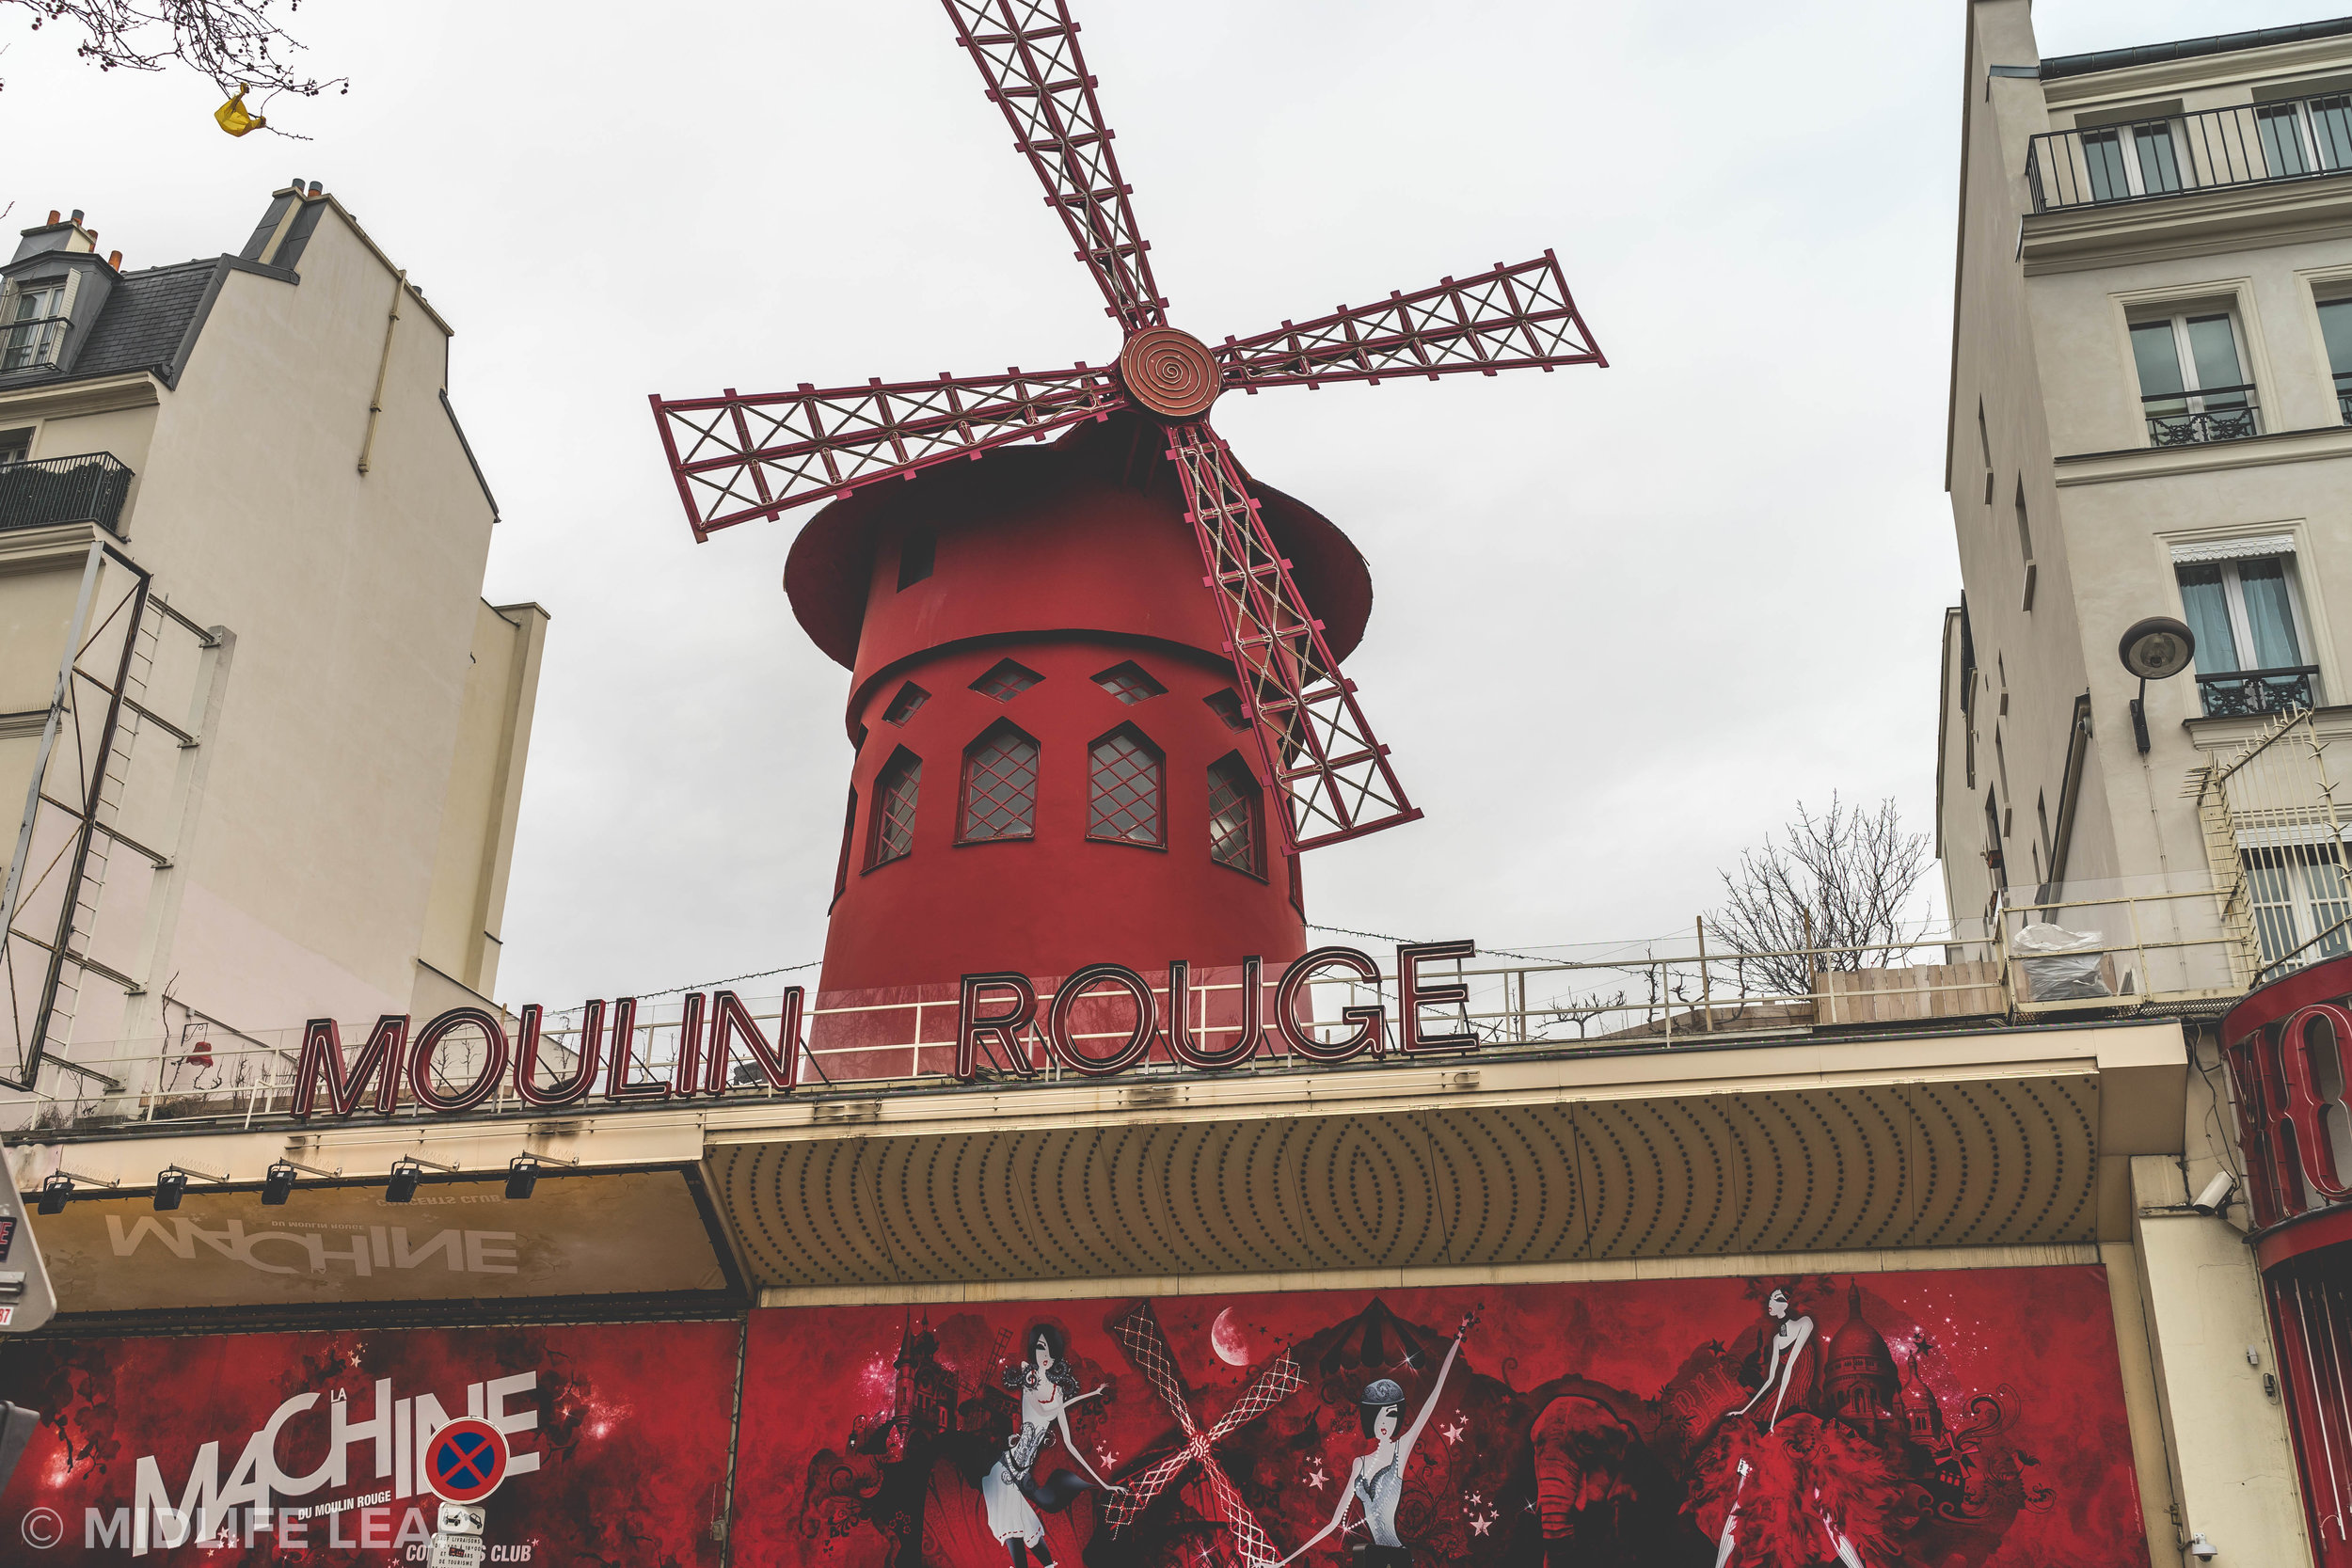 moulin-rouge-what-to-do-in-montmartre-18th-paris